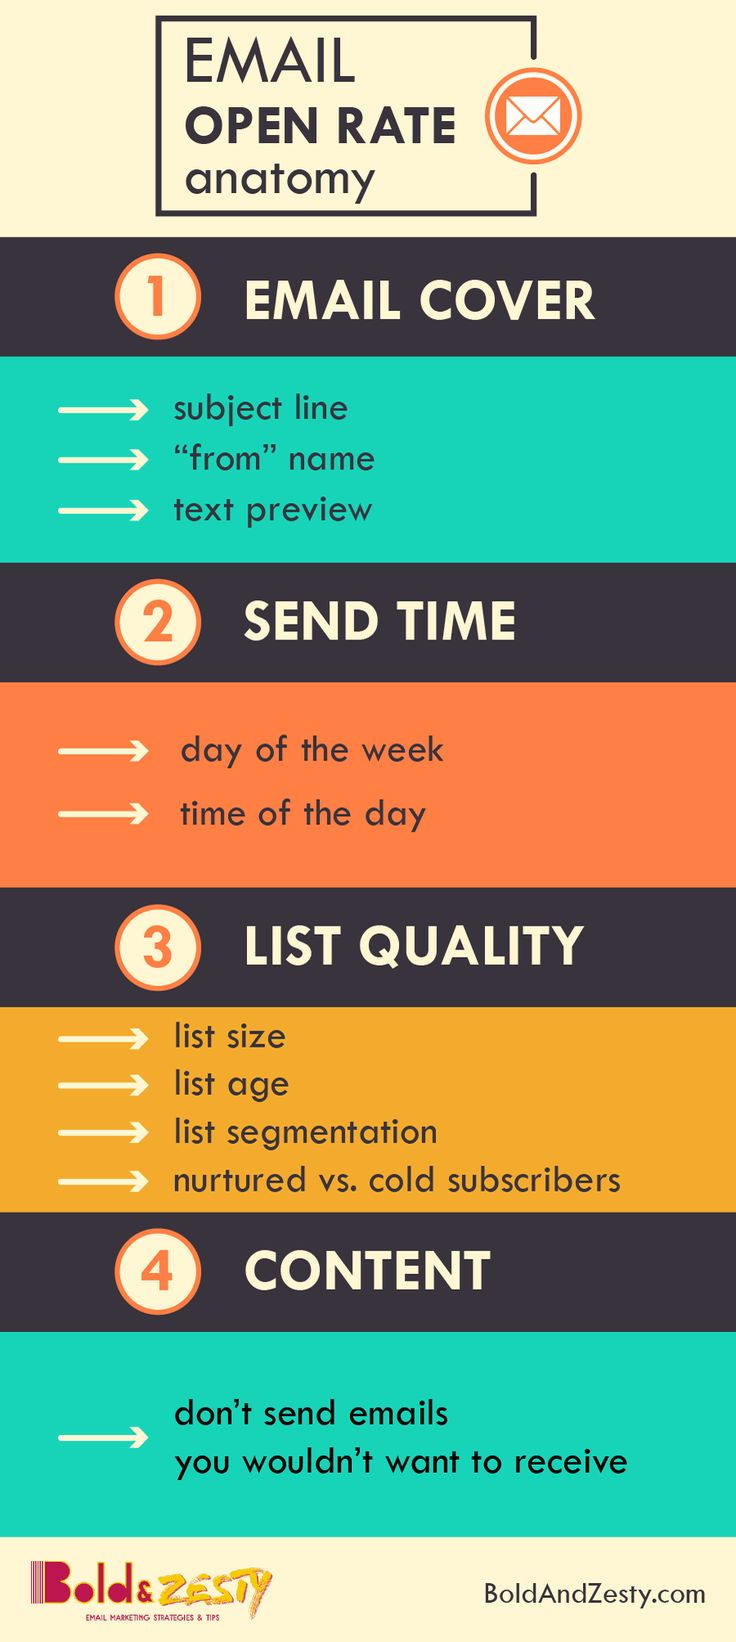 Anatomy of email open rates: subject line, preview text, sender name, send time, list quality, email content.